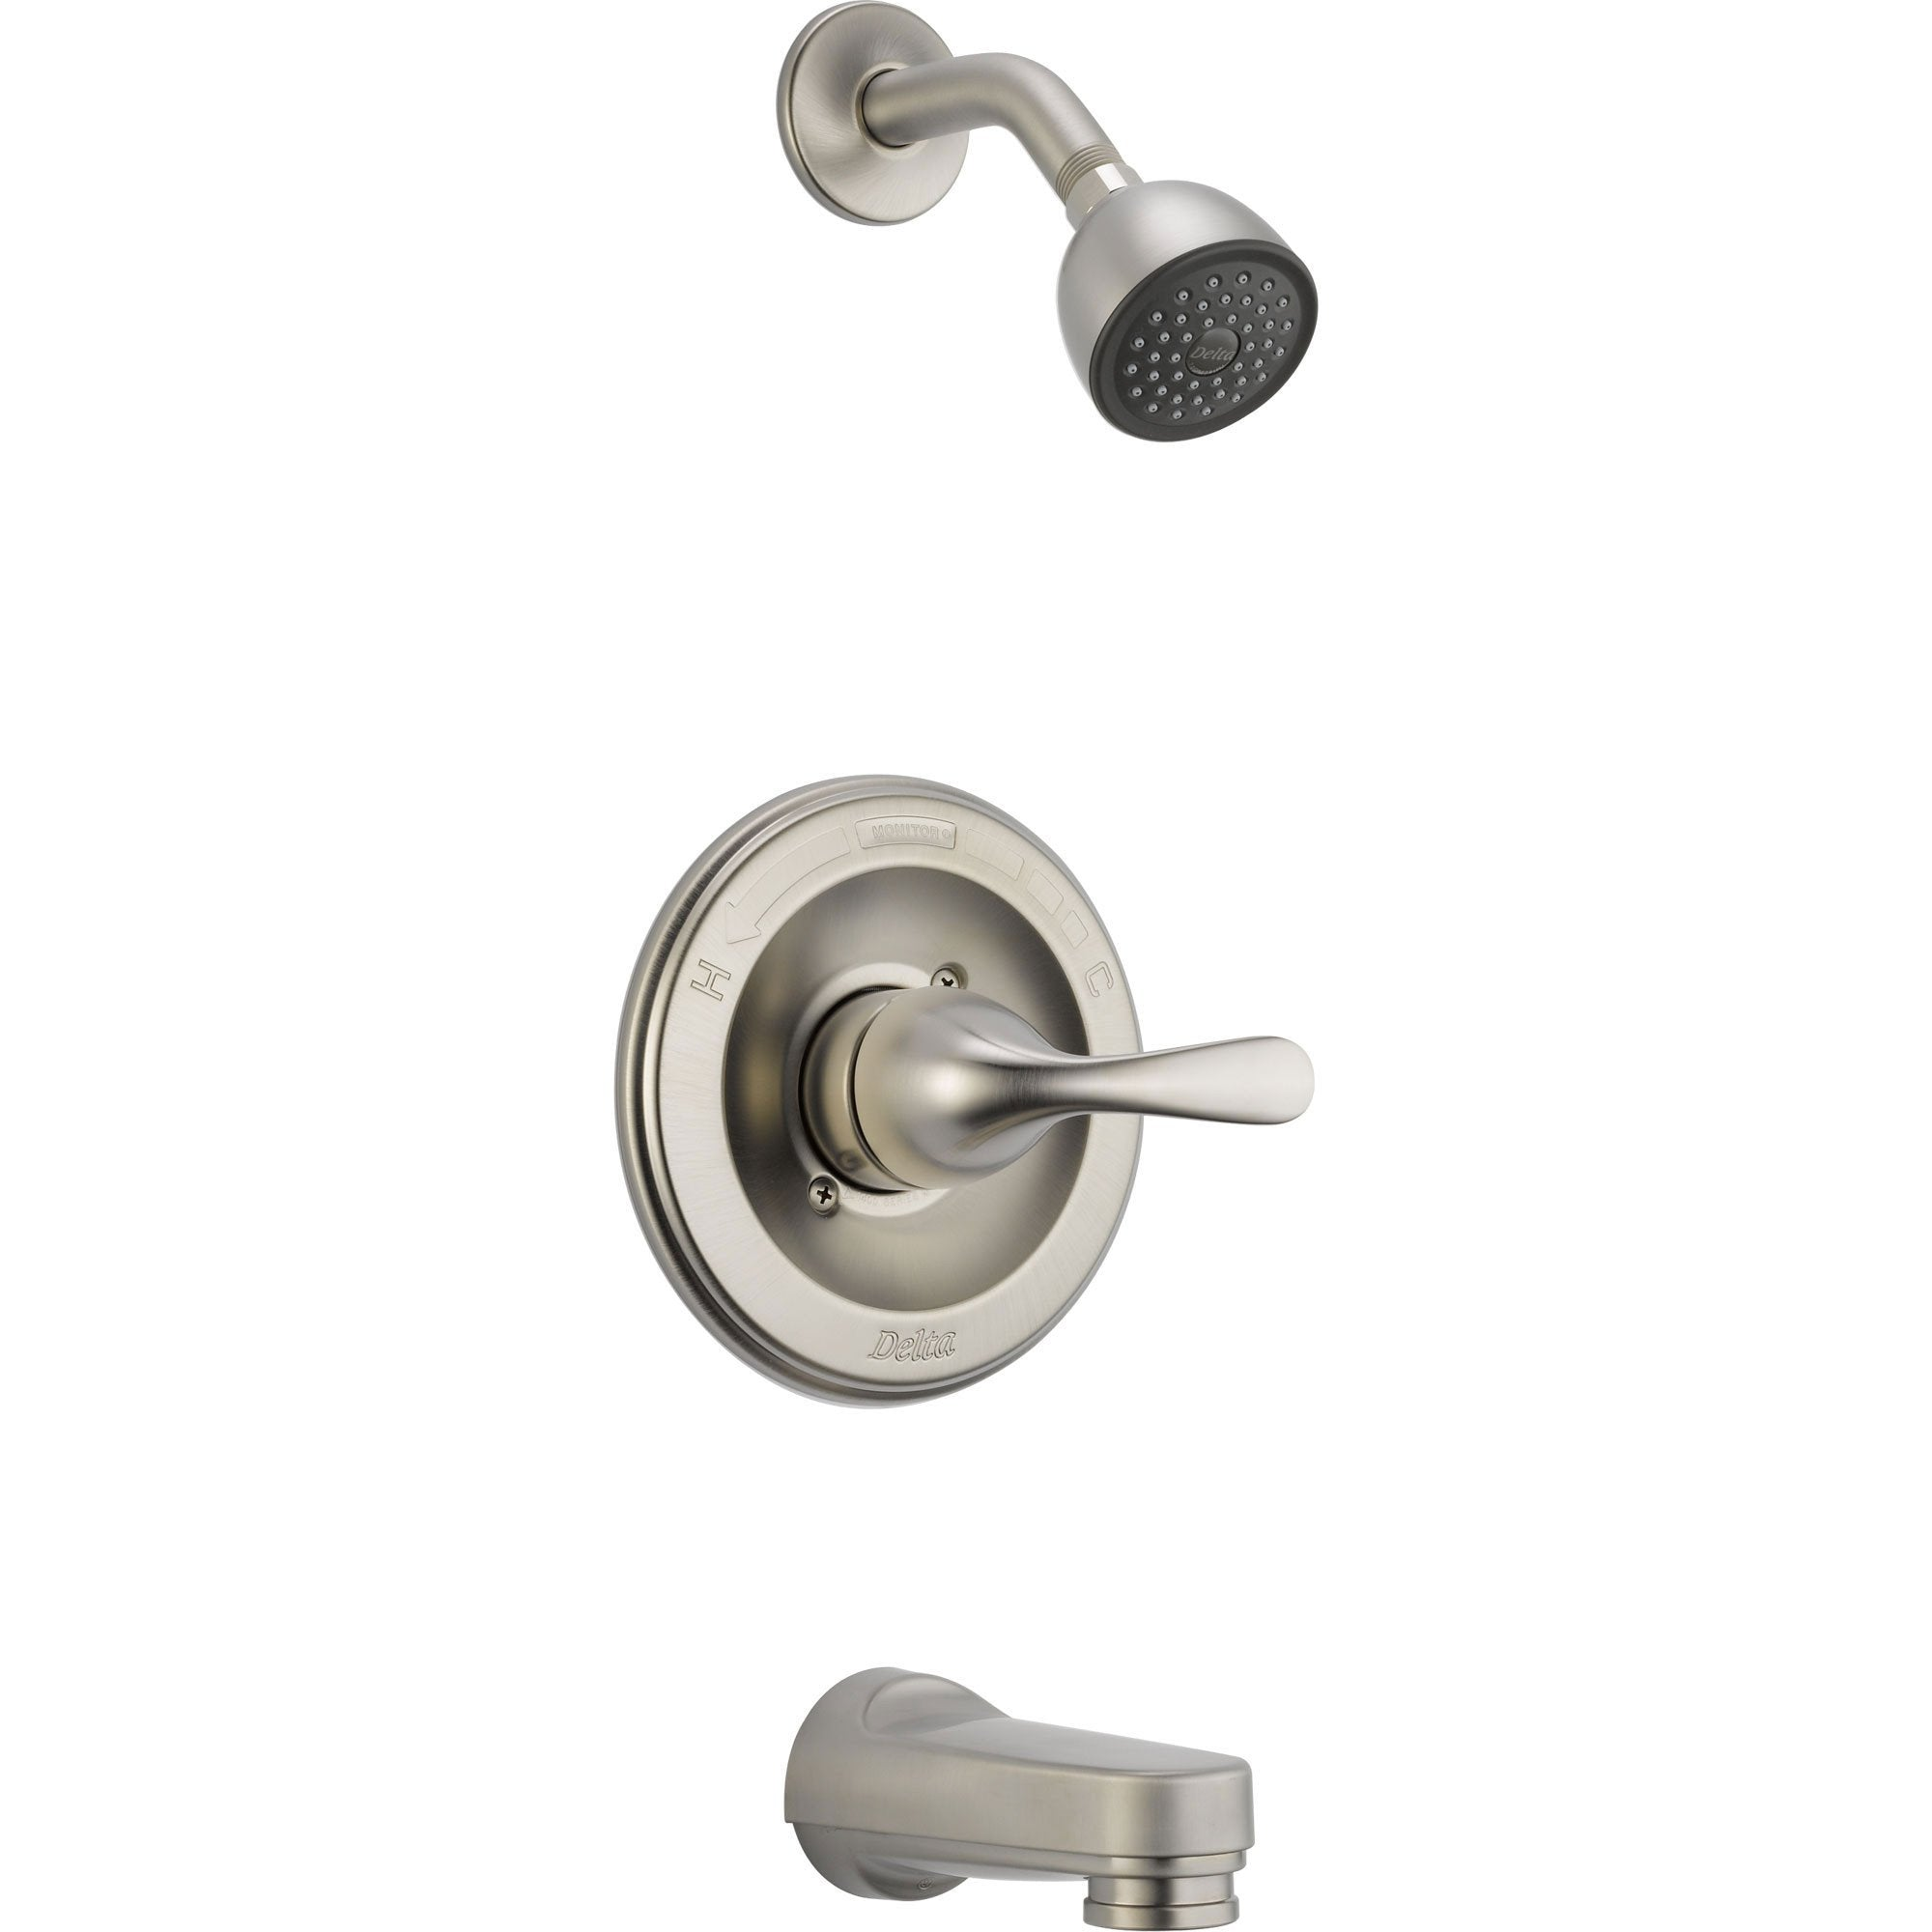 Delta Classic Stainless Steel Finish Tub and Shower Faucet with Valve D302V